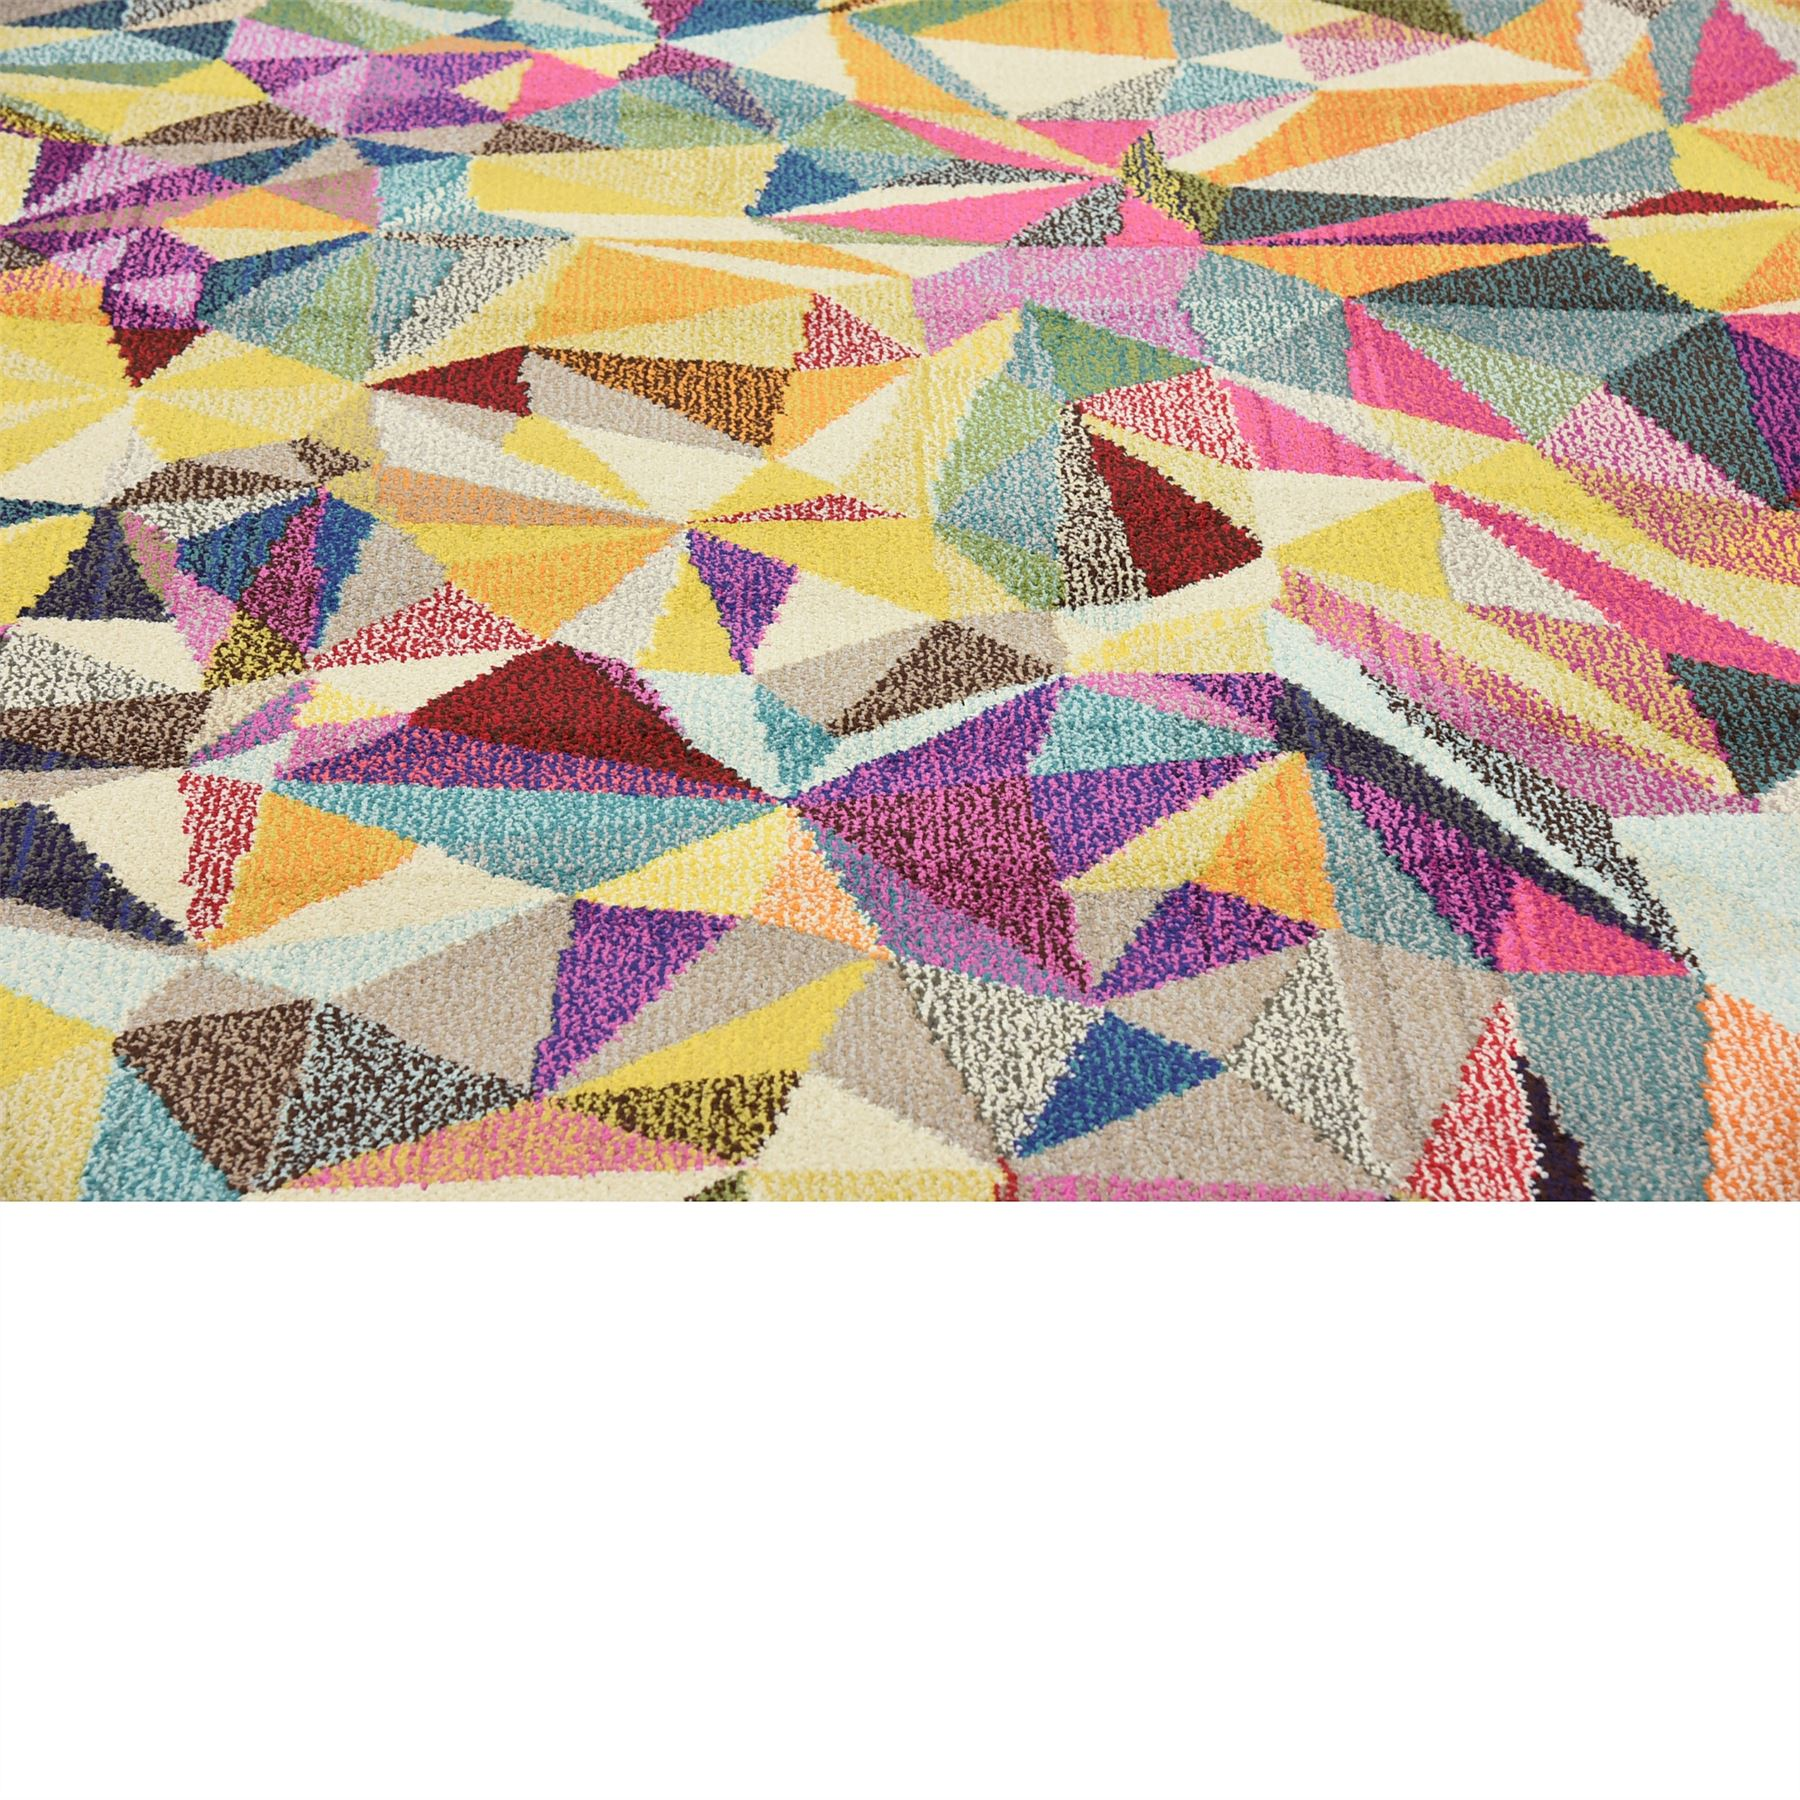 Modern Looking Rug: Multi Color Modern Design Area Rug Contemporary Style